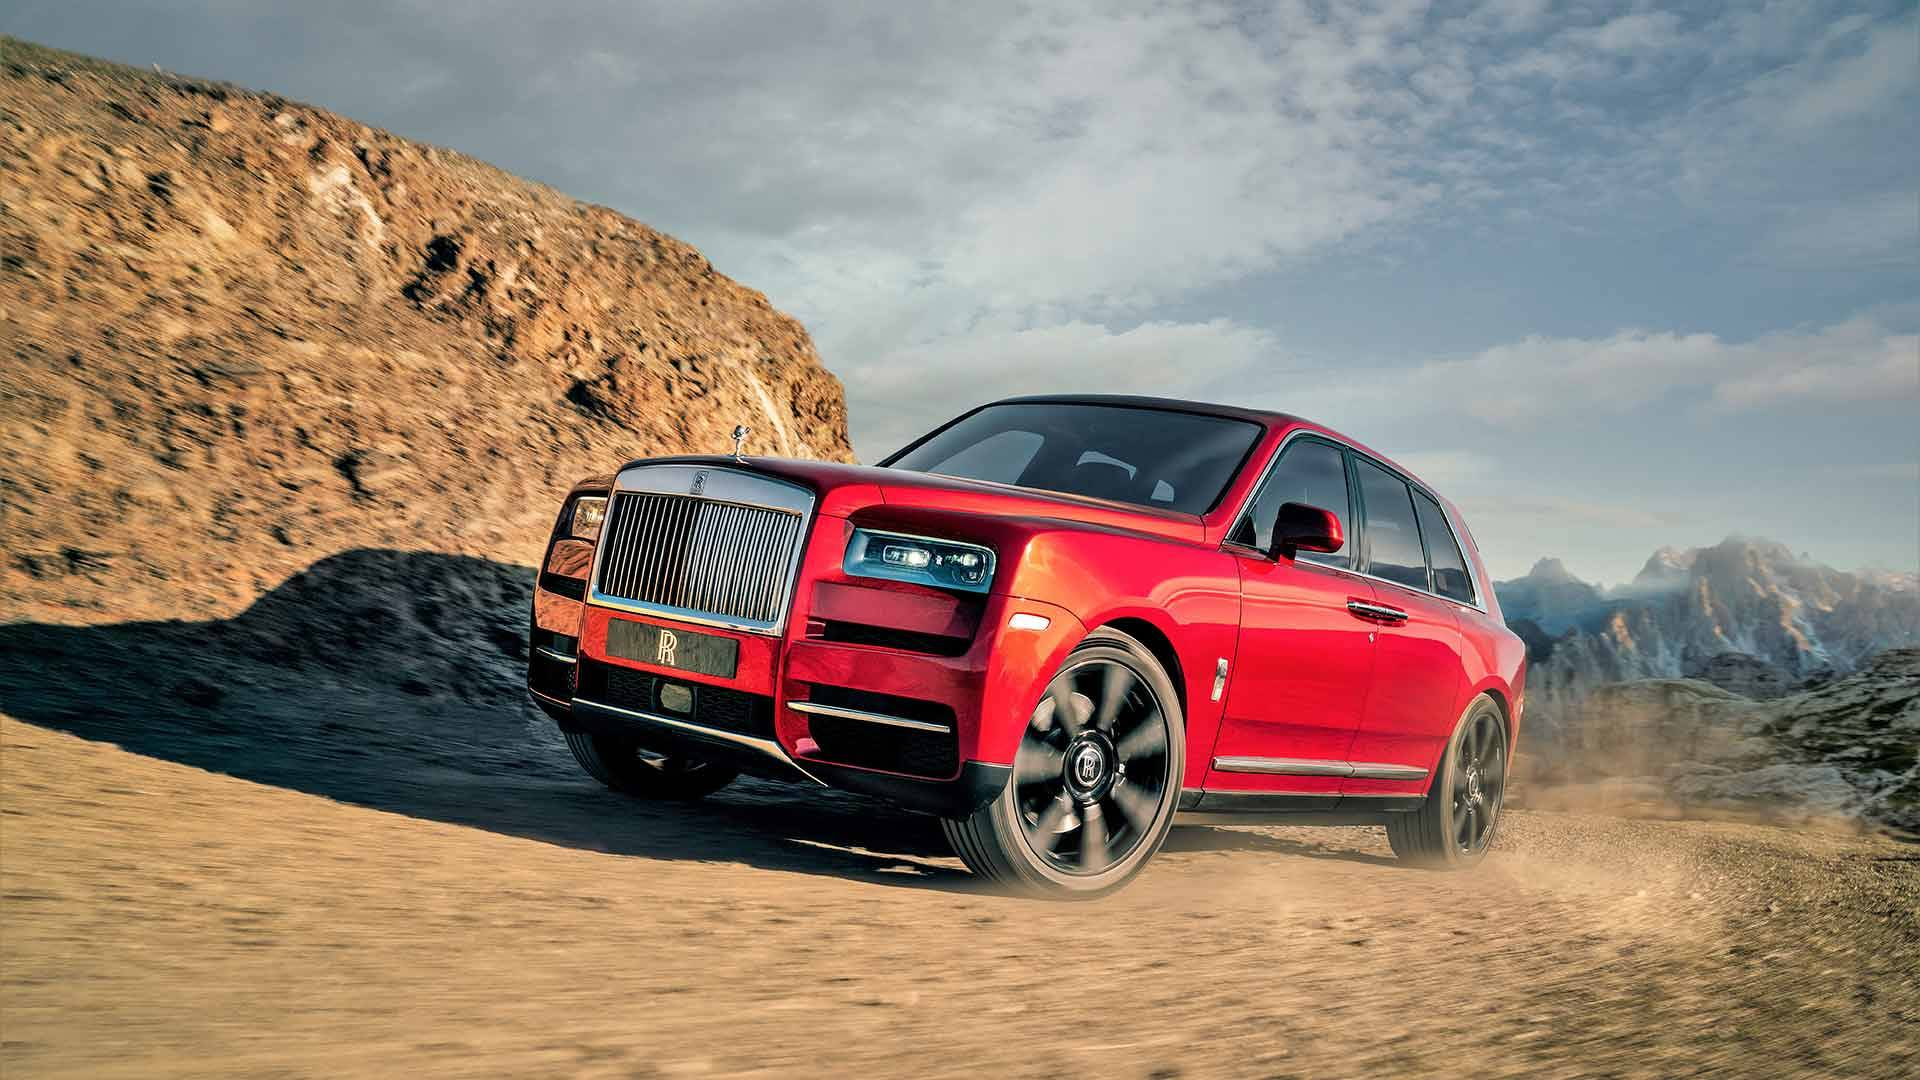 Rolls Royce Cullinan How Does It Compare To The Bentley Bentayga